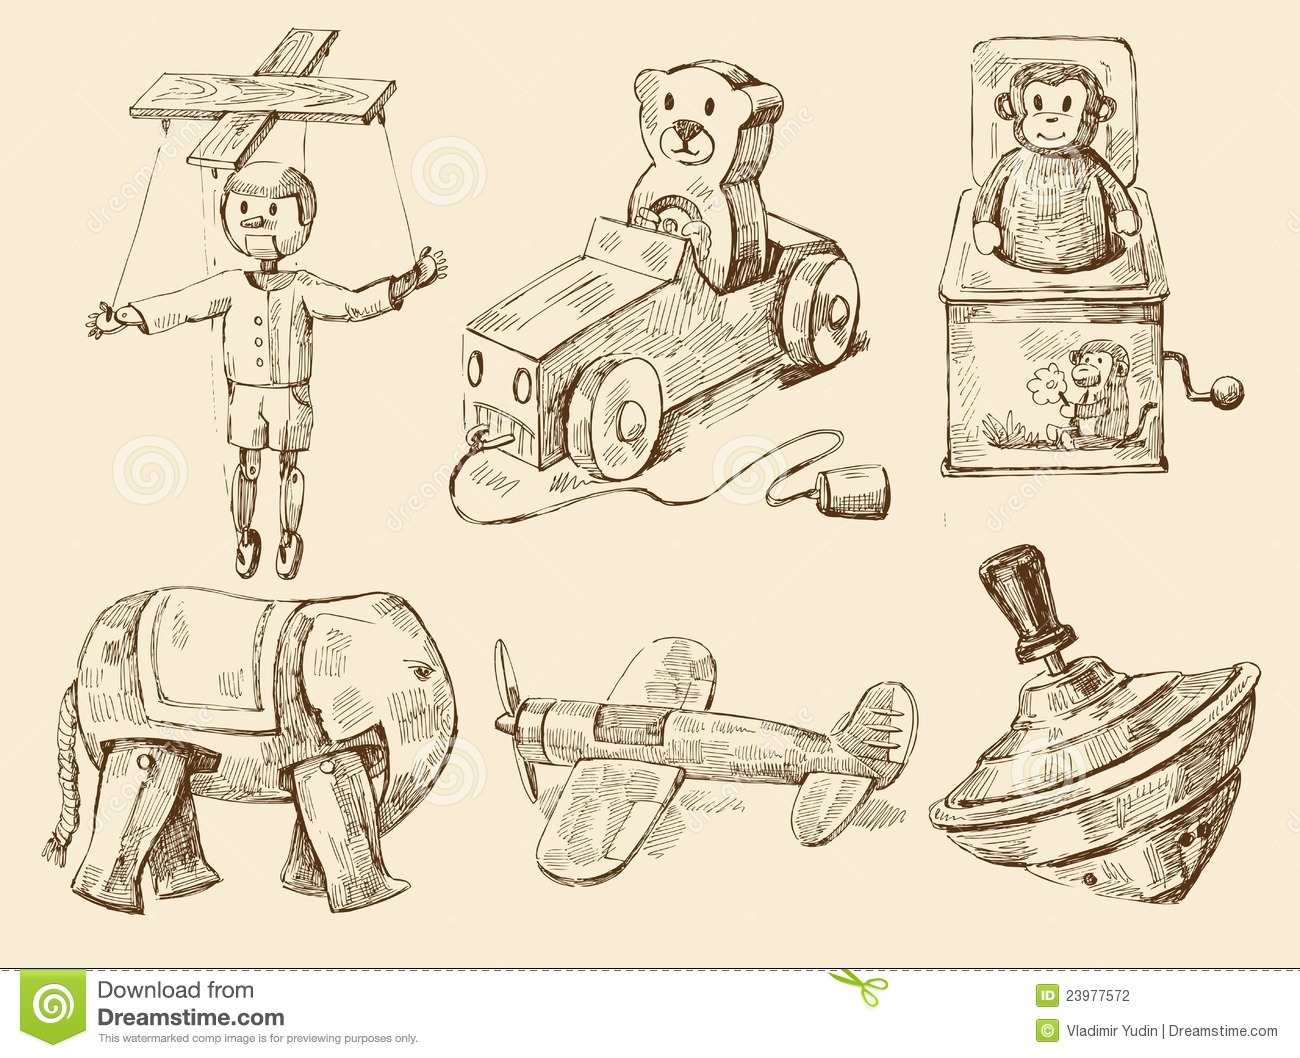 Drawn toy Search vintage Playgrounds Google